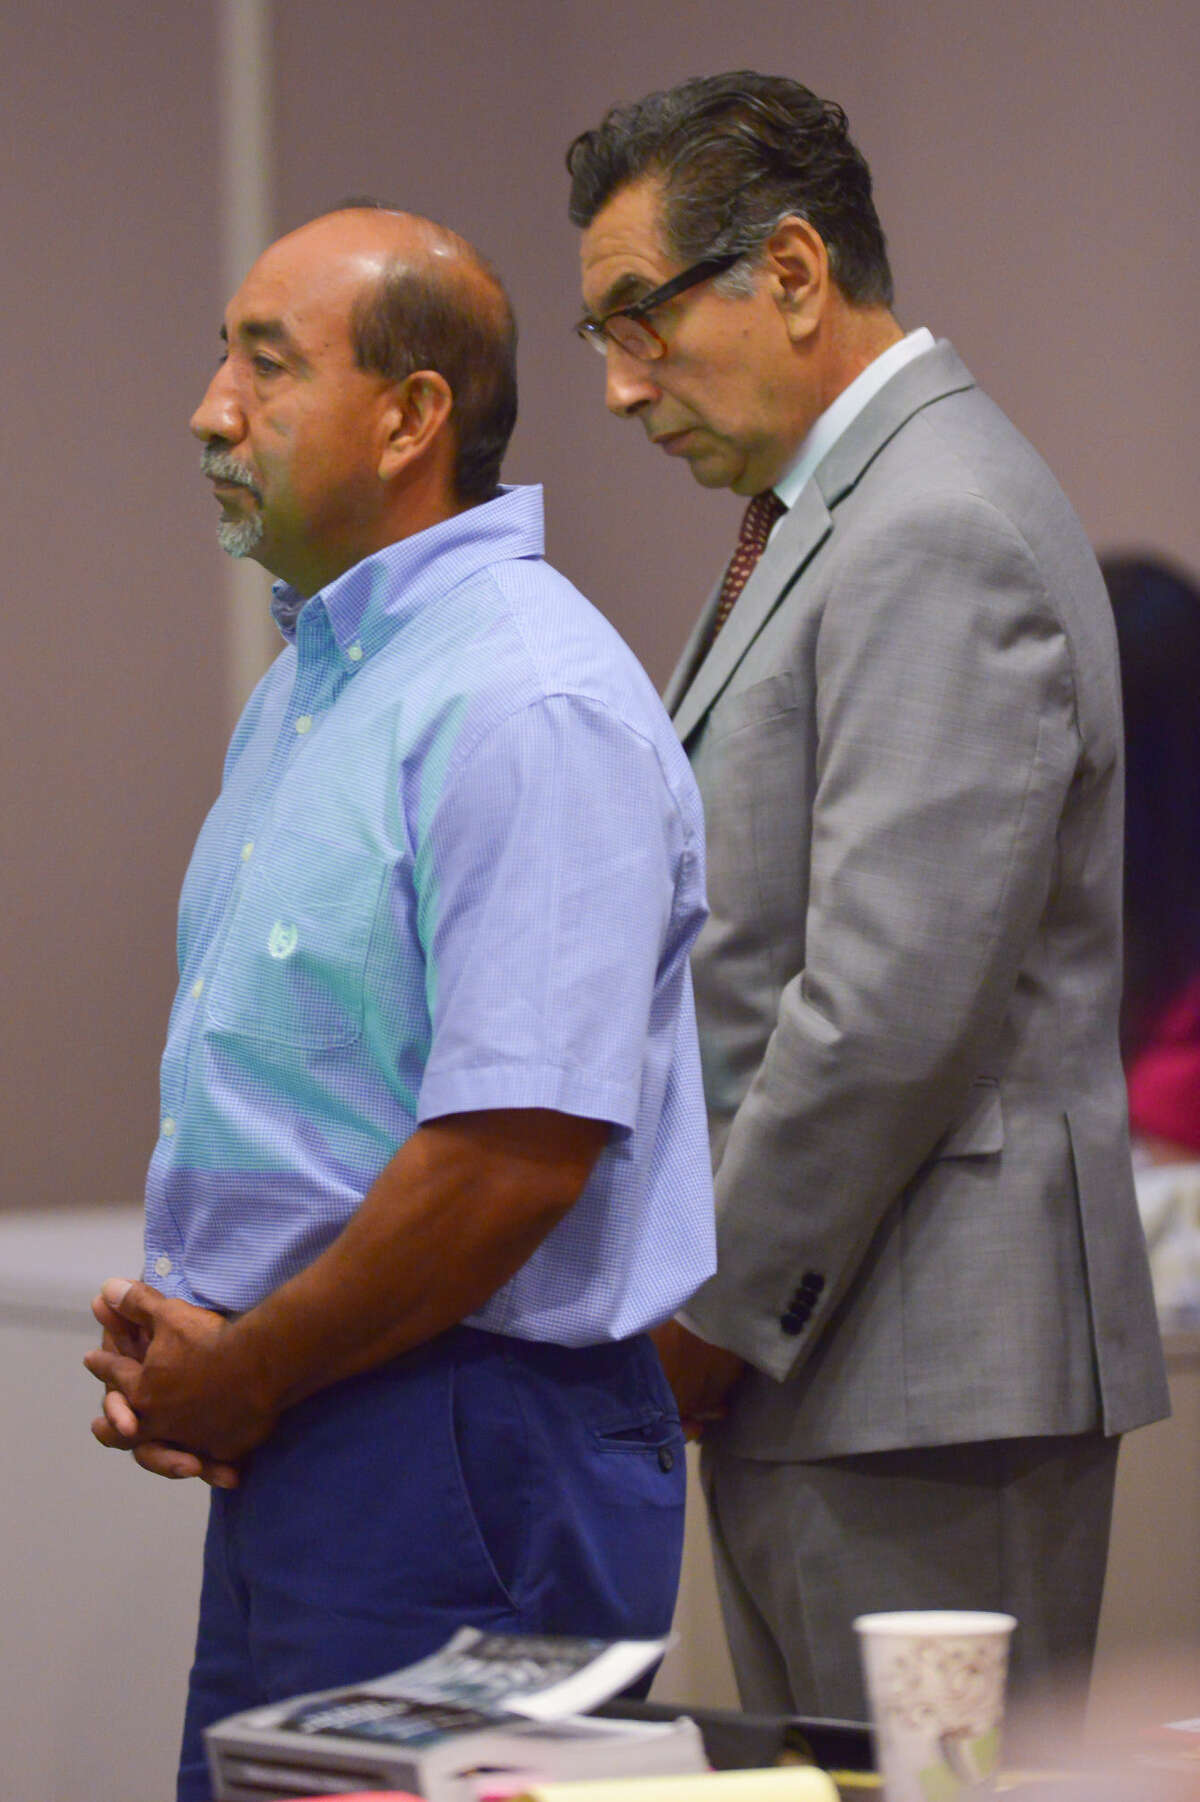 Adrian Perryman (left) stands with his attorney Tony Jimenez at the start of his trial.